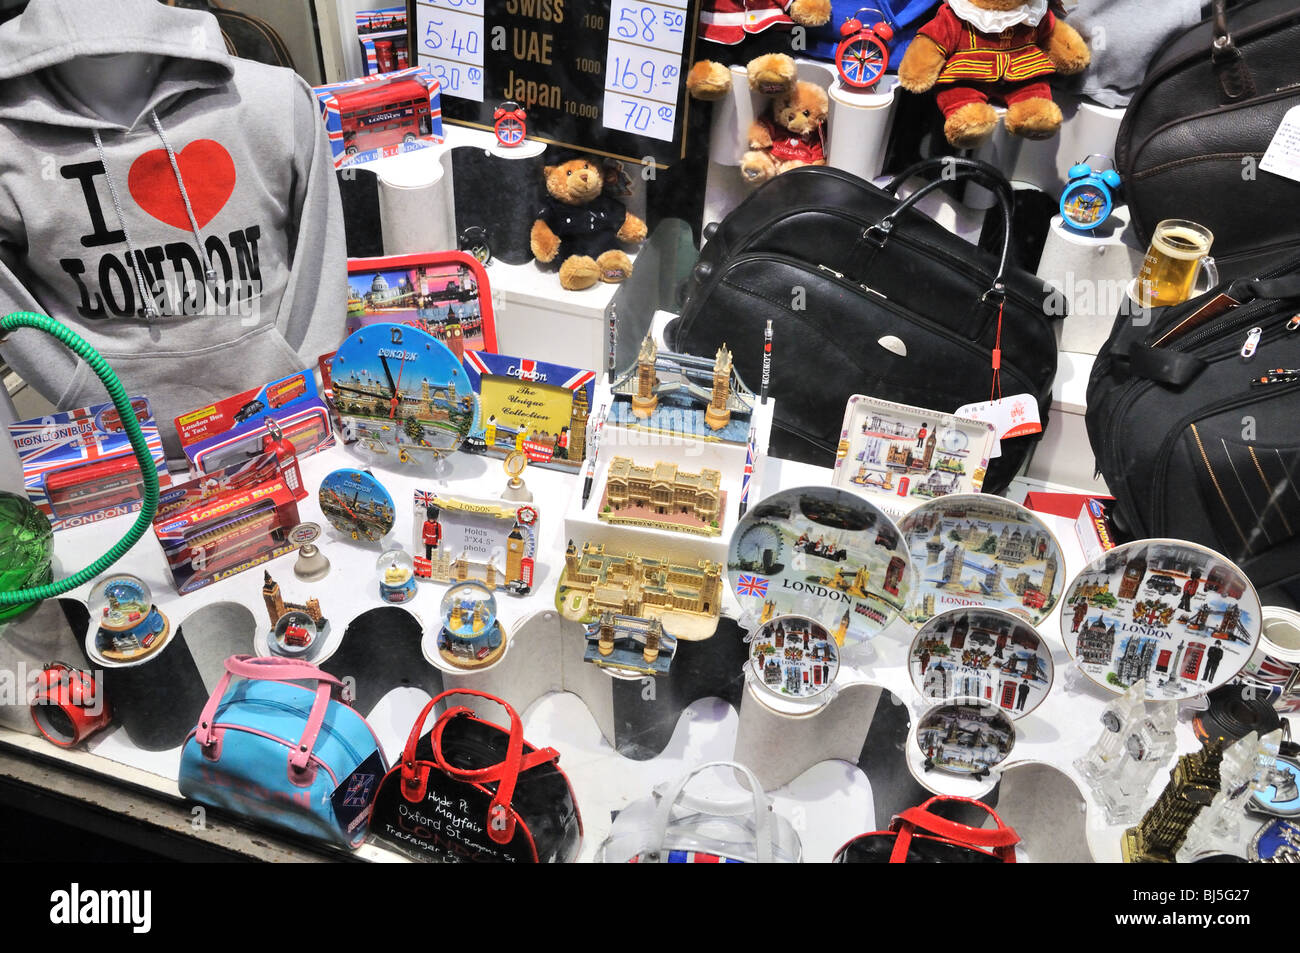 Window of London gift shop with souvenirs - Stock Image